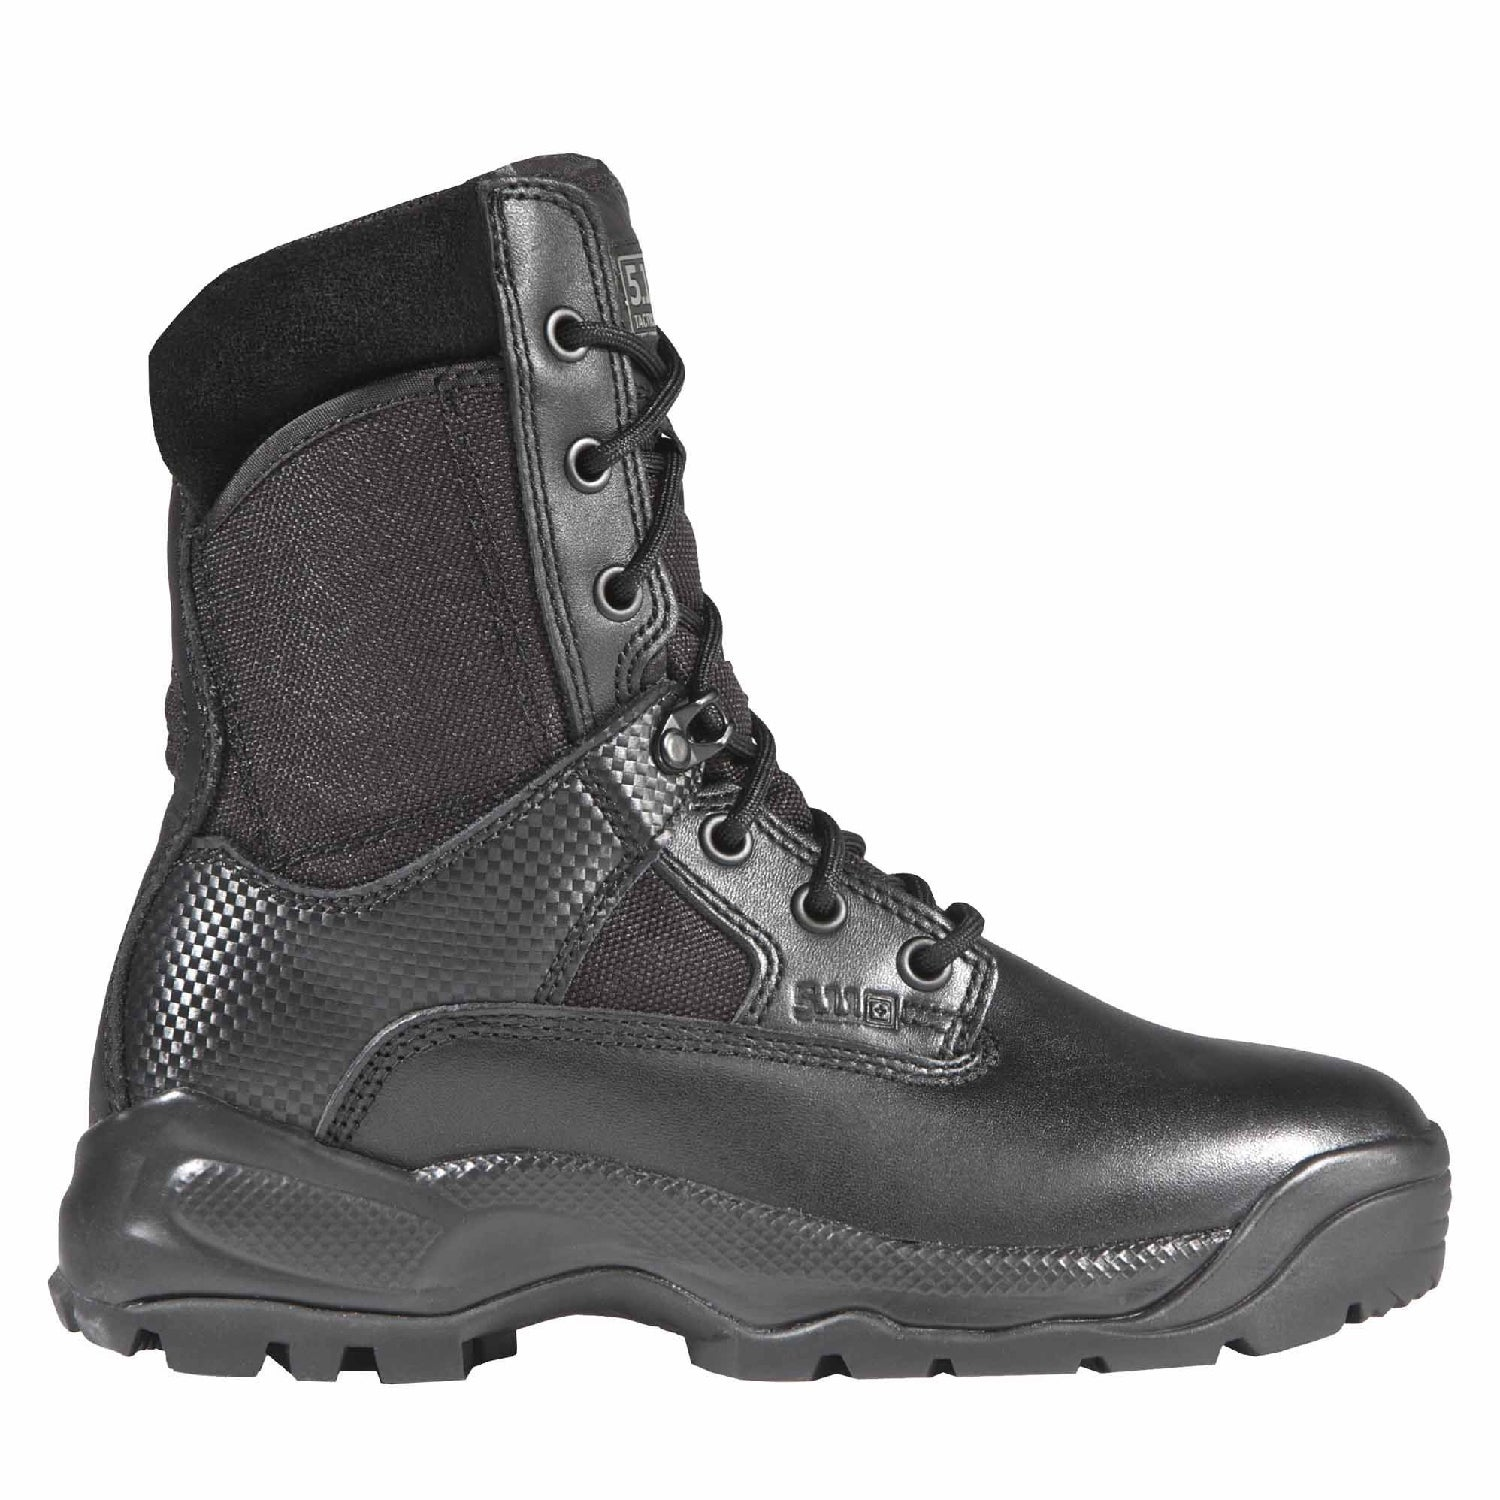 5.11 Tactical Atac 8 Inch Womens Boots Military - Black All Sizes  256068a241